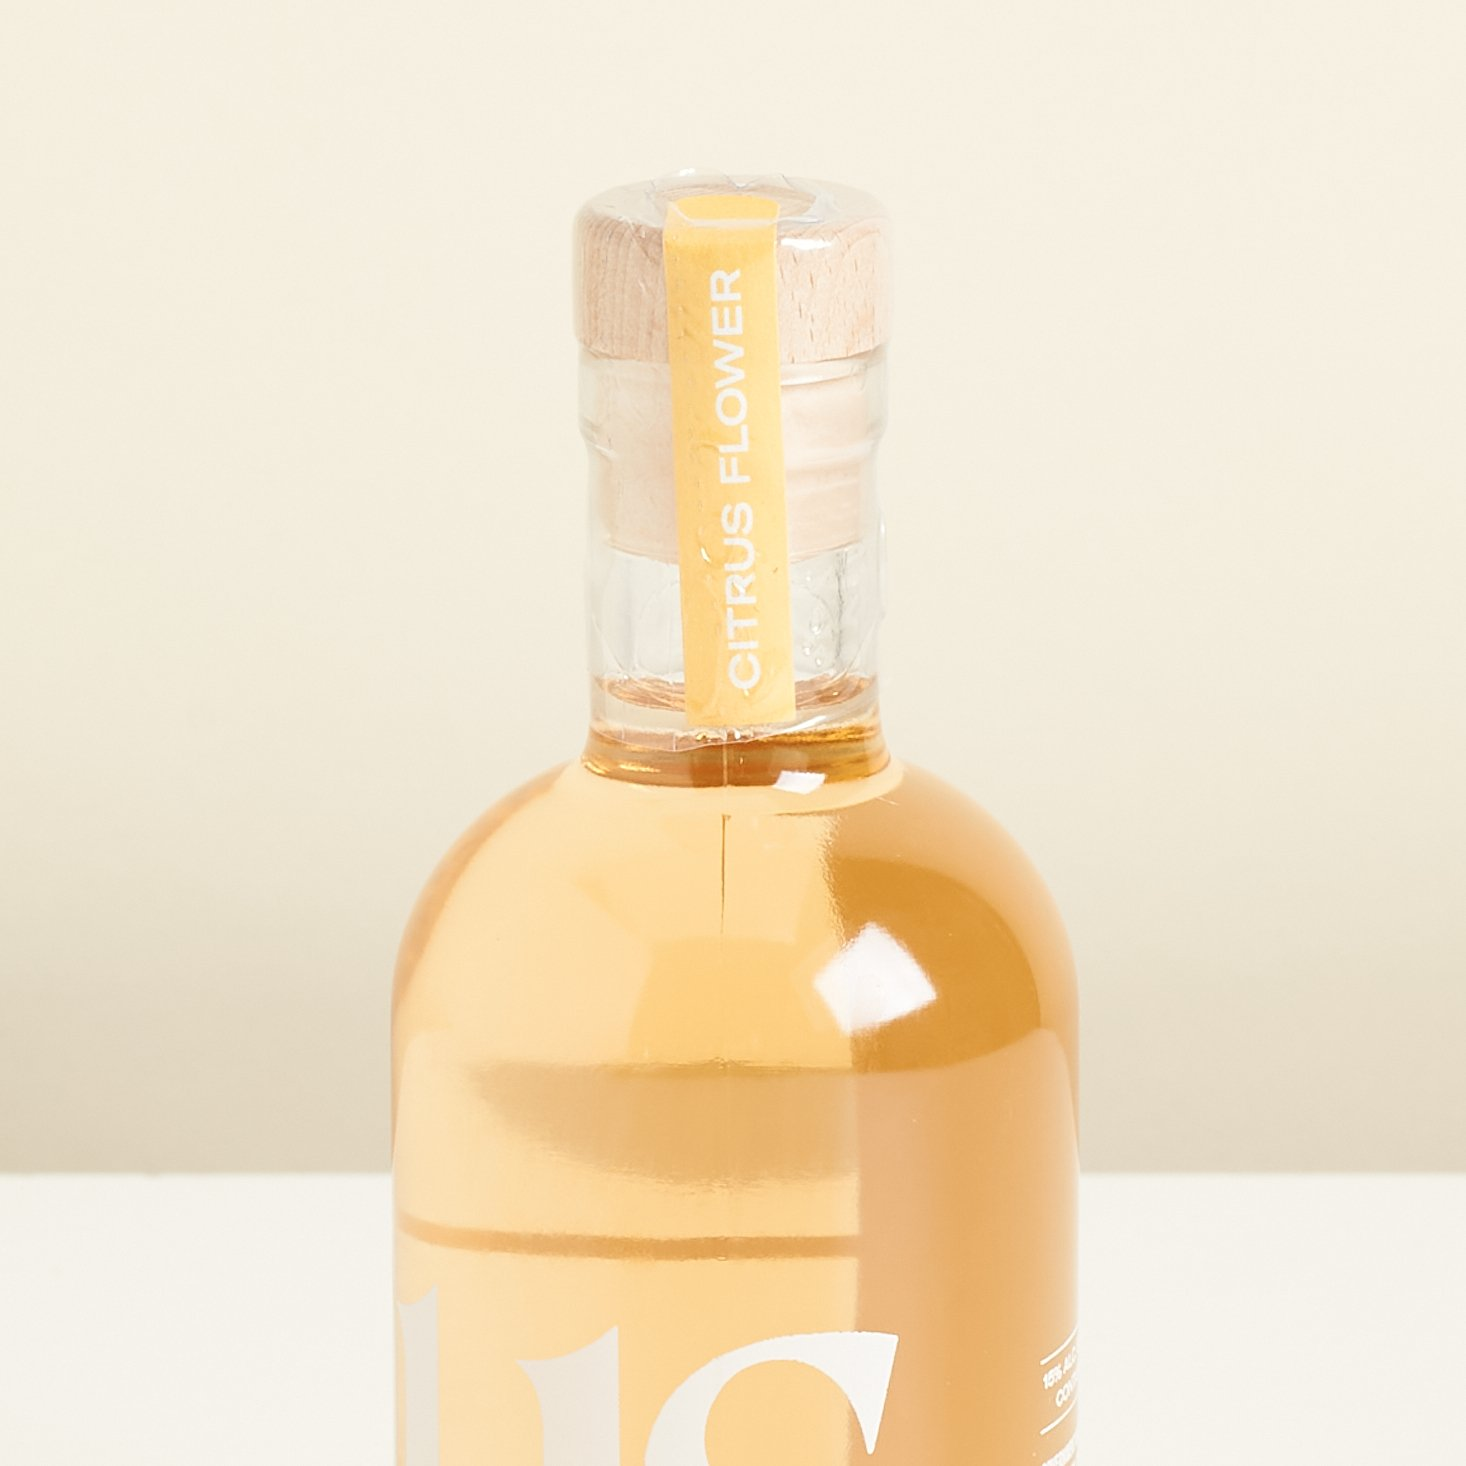 Haus Aperitif - 200mL Citrus Flower Bottle Label